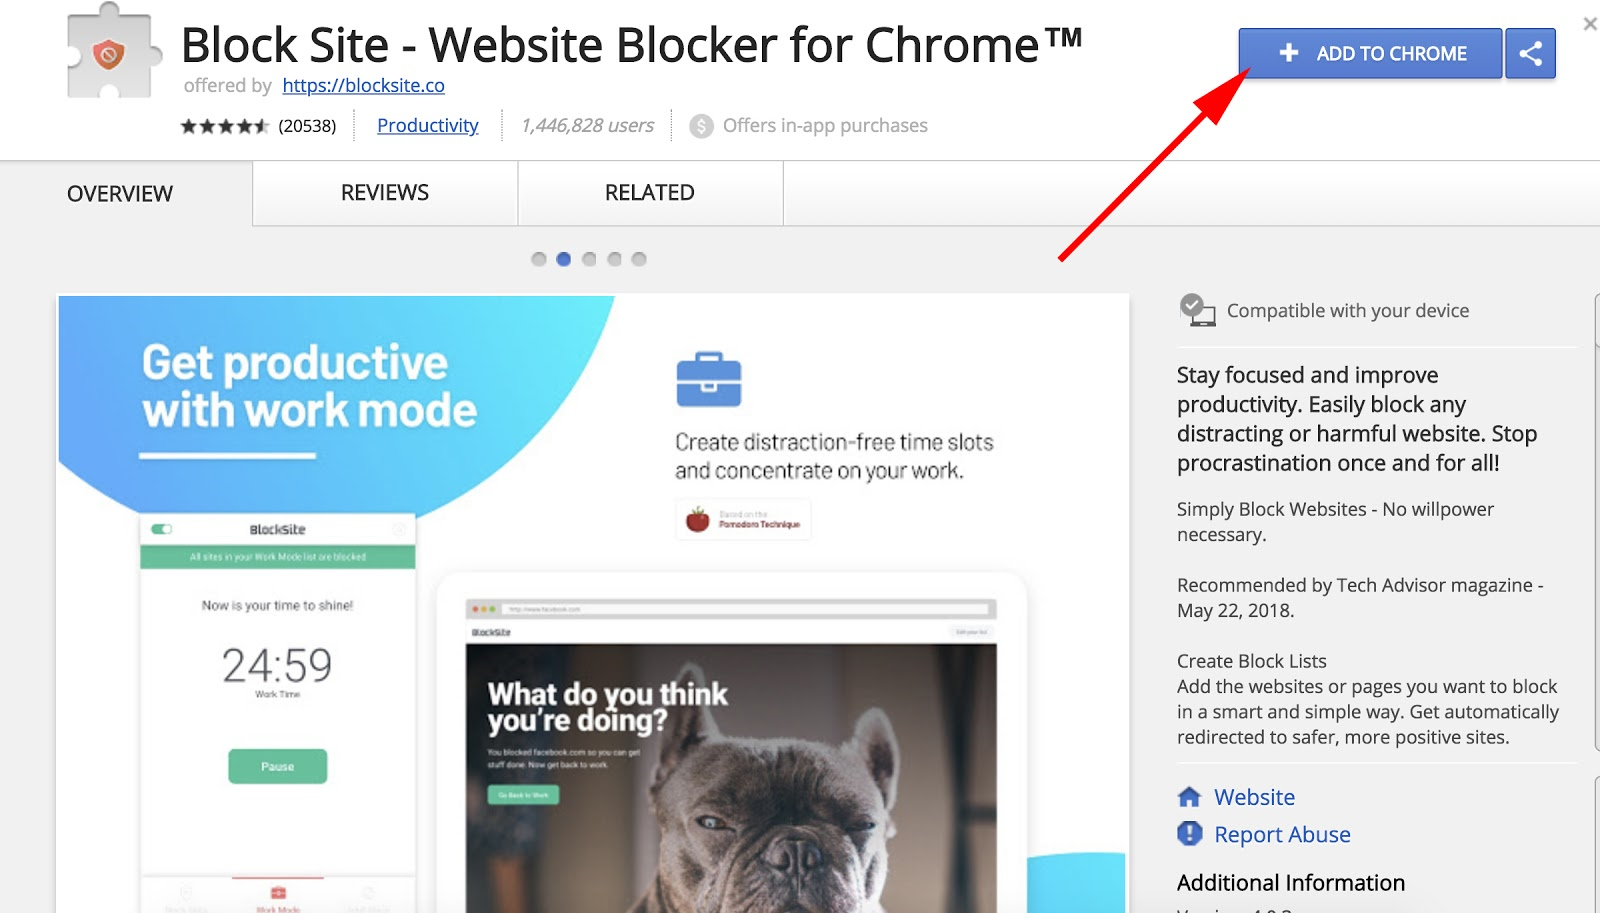 Como Filtrar um Website no Chrome